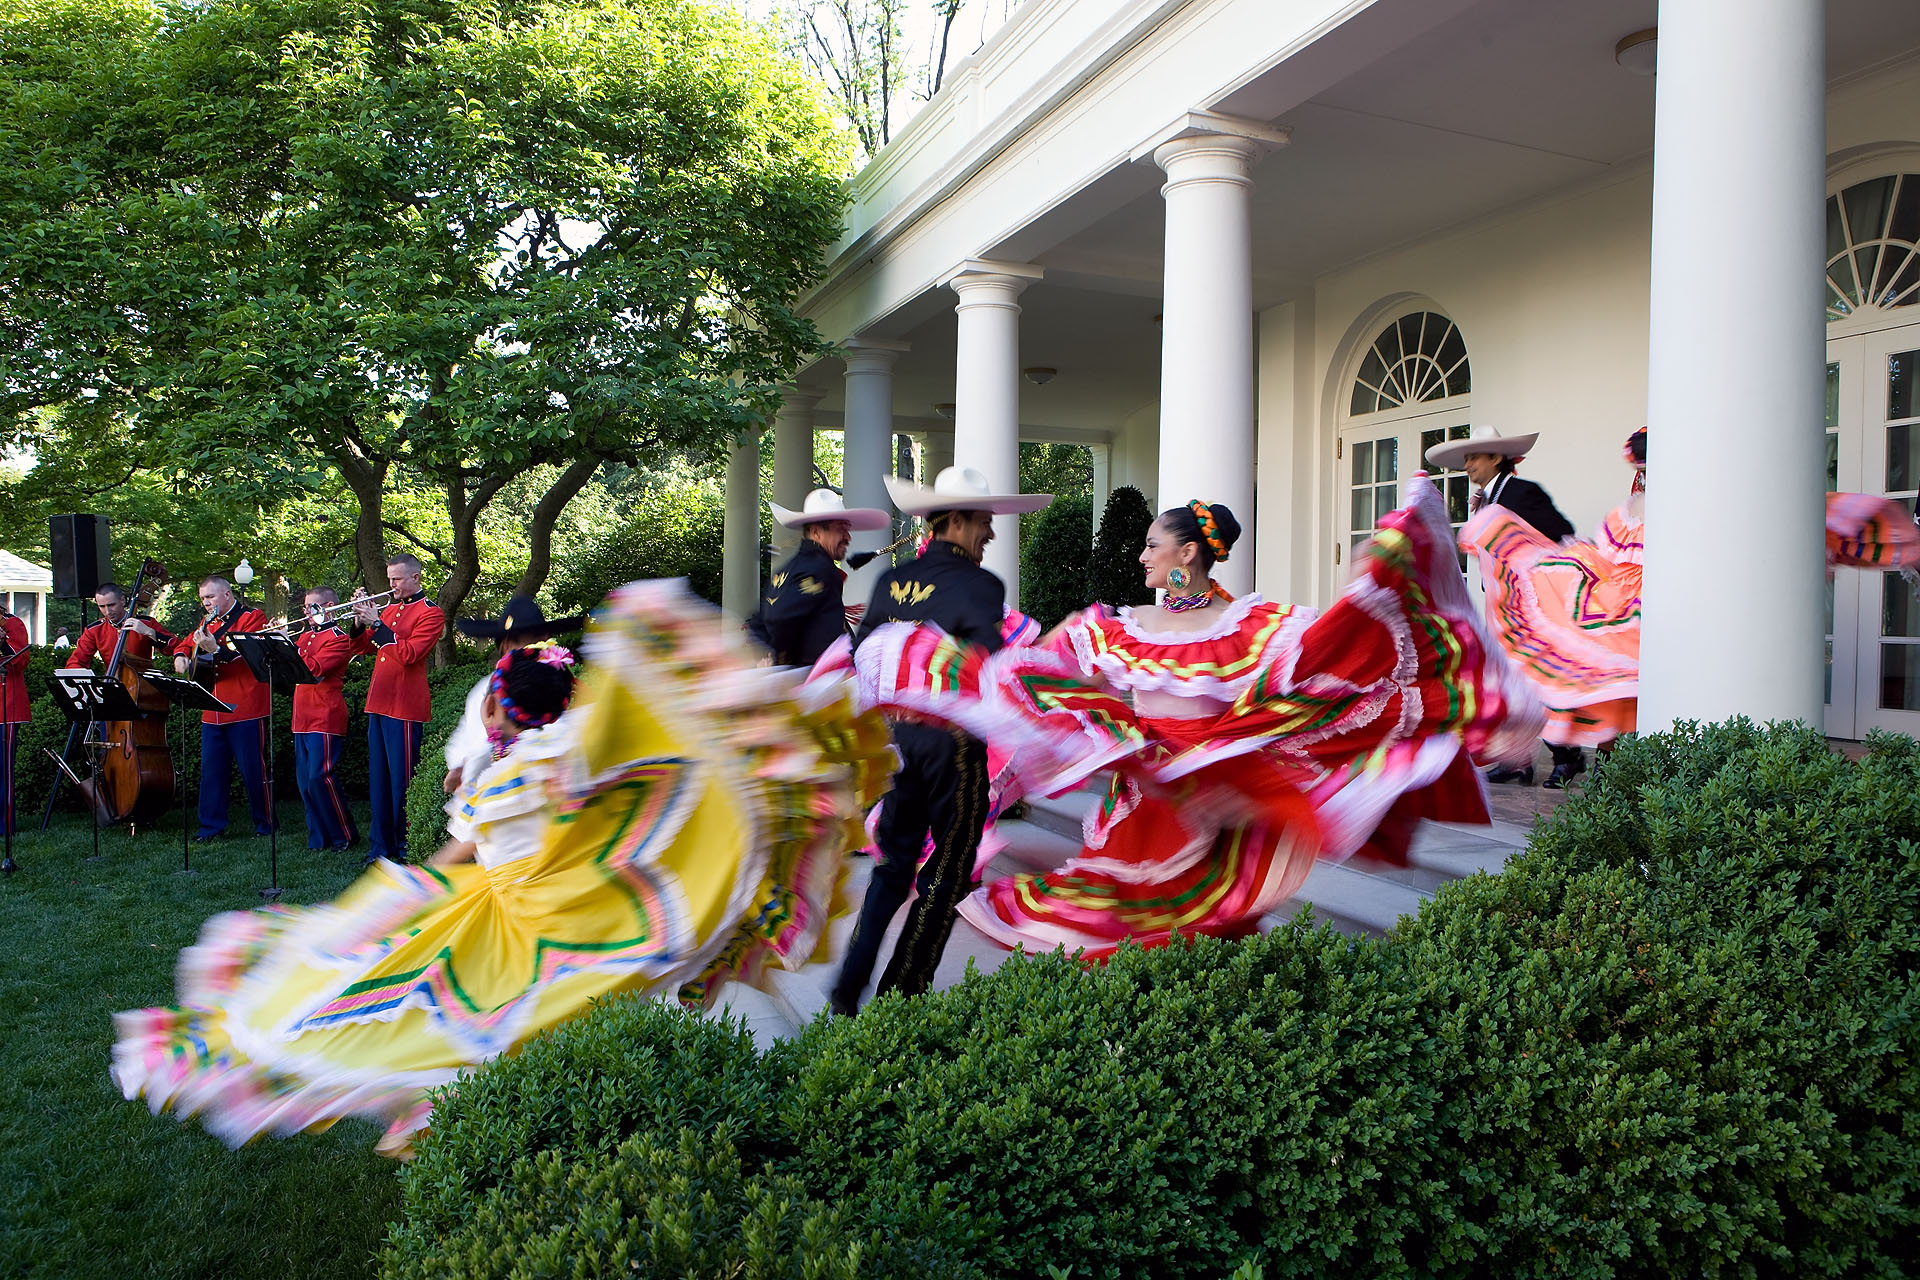 Dancers perform at the Cinco de Mayo reception in the Rose Garden of the White House, May 5, 2010.  (Official White House Photo by Chuck Kennedy)